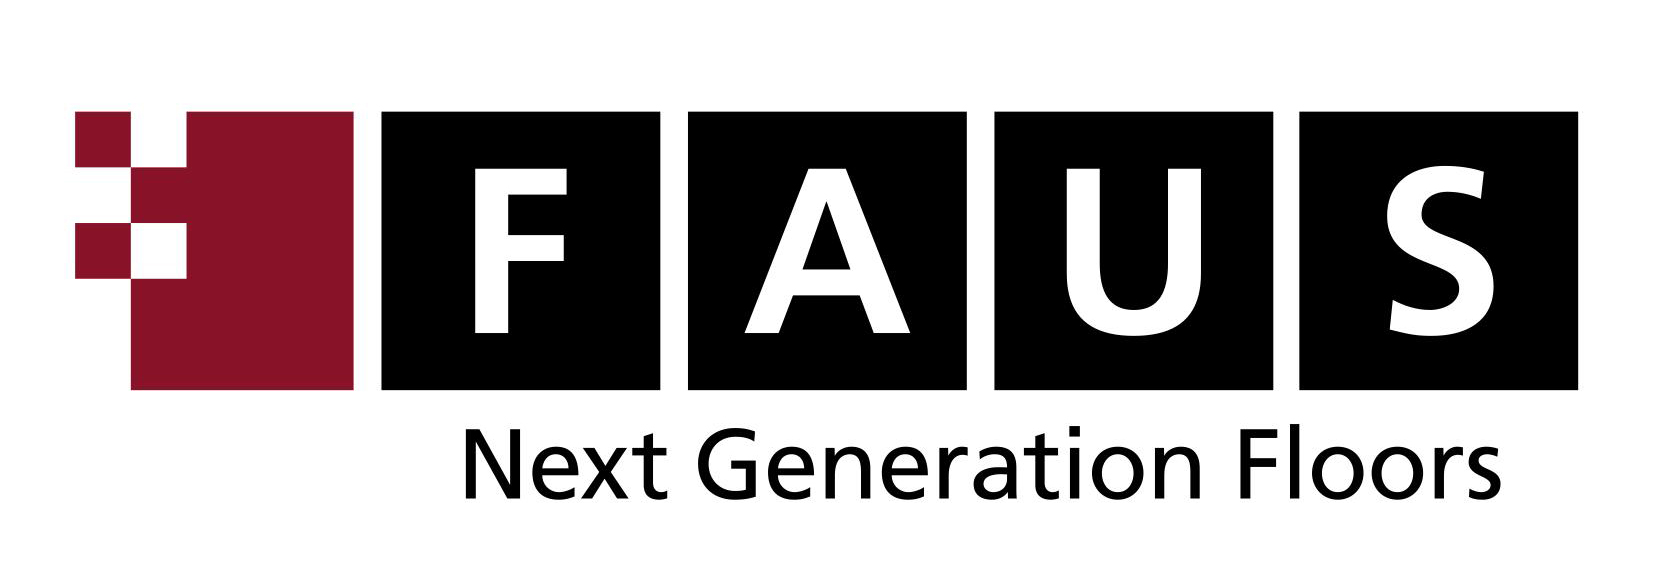 Faus Group